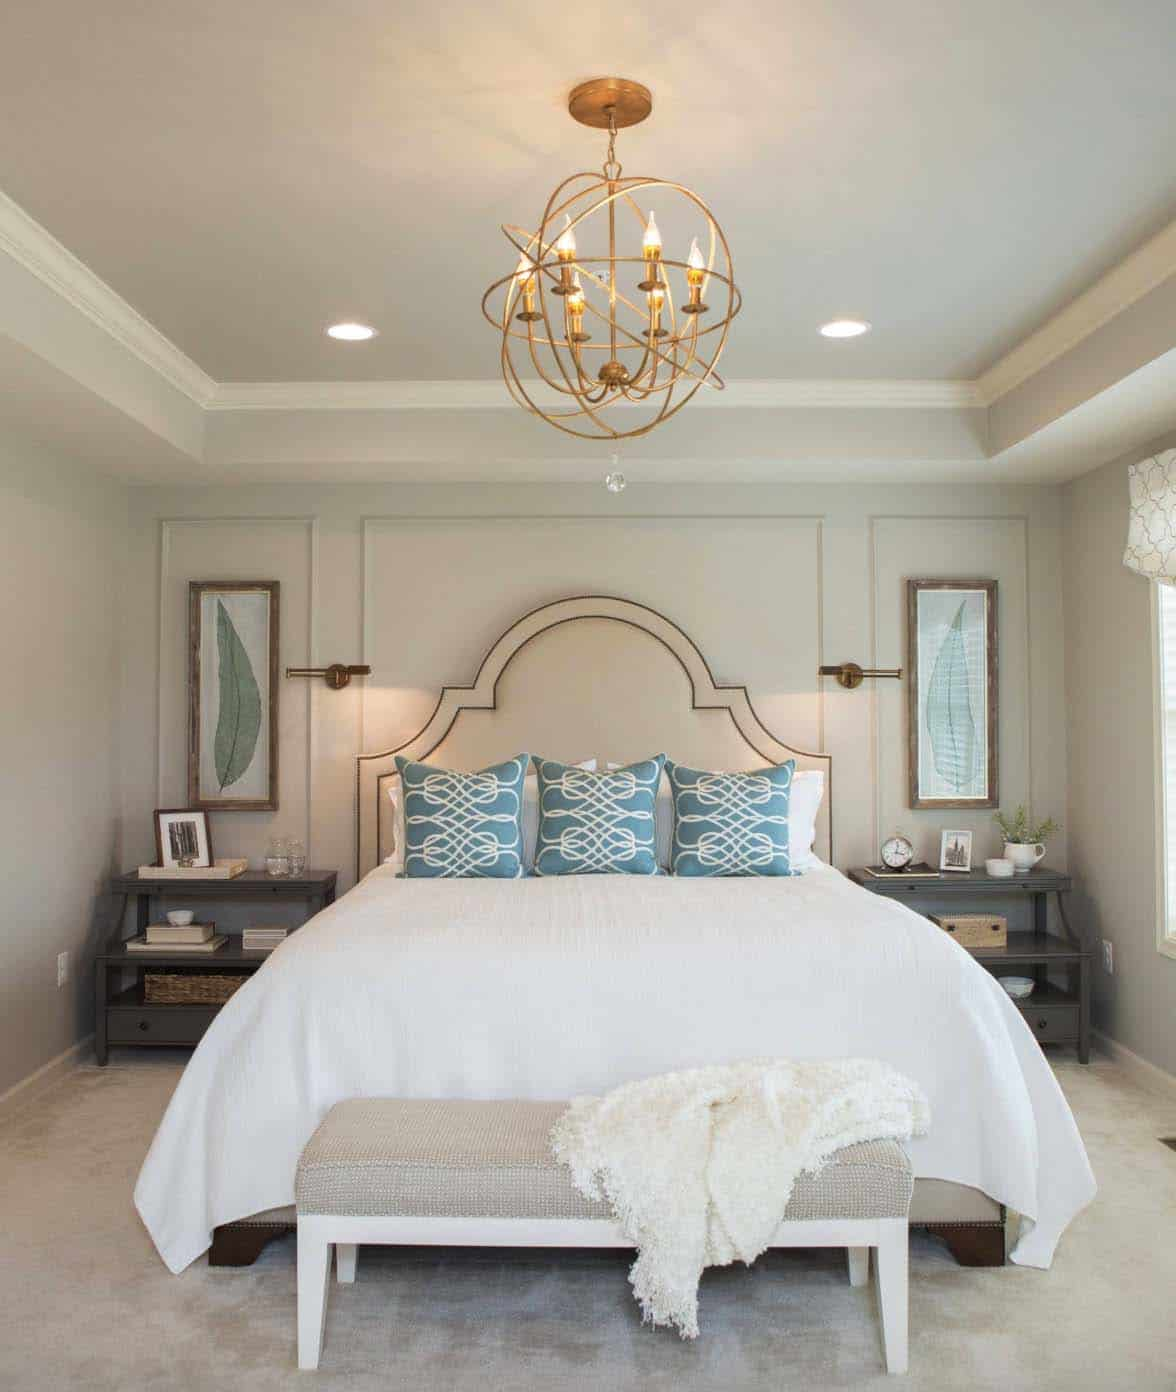 Guest Bedroom Designs: 20+ Serene And Elegant Master Bedroom Decorating Ideas